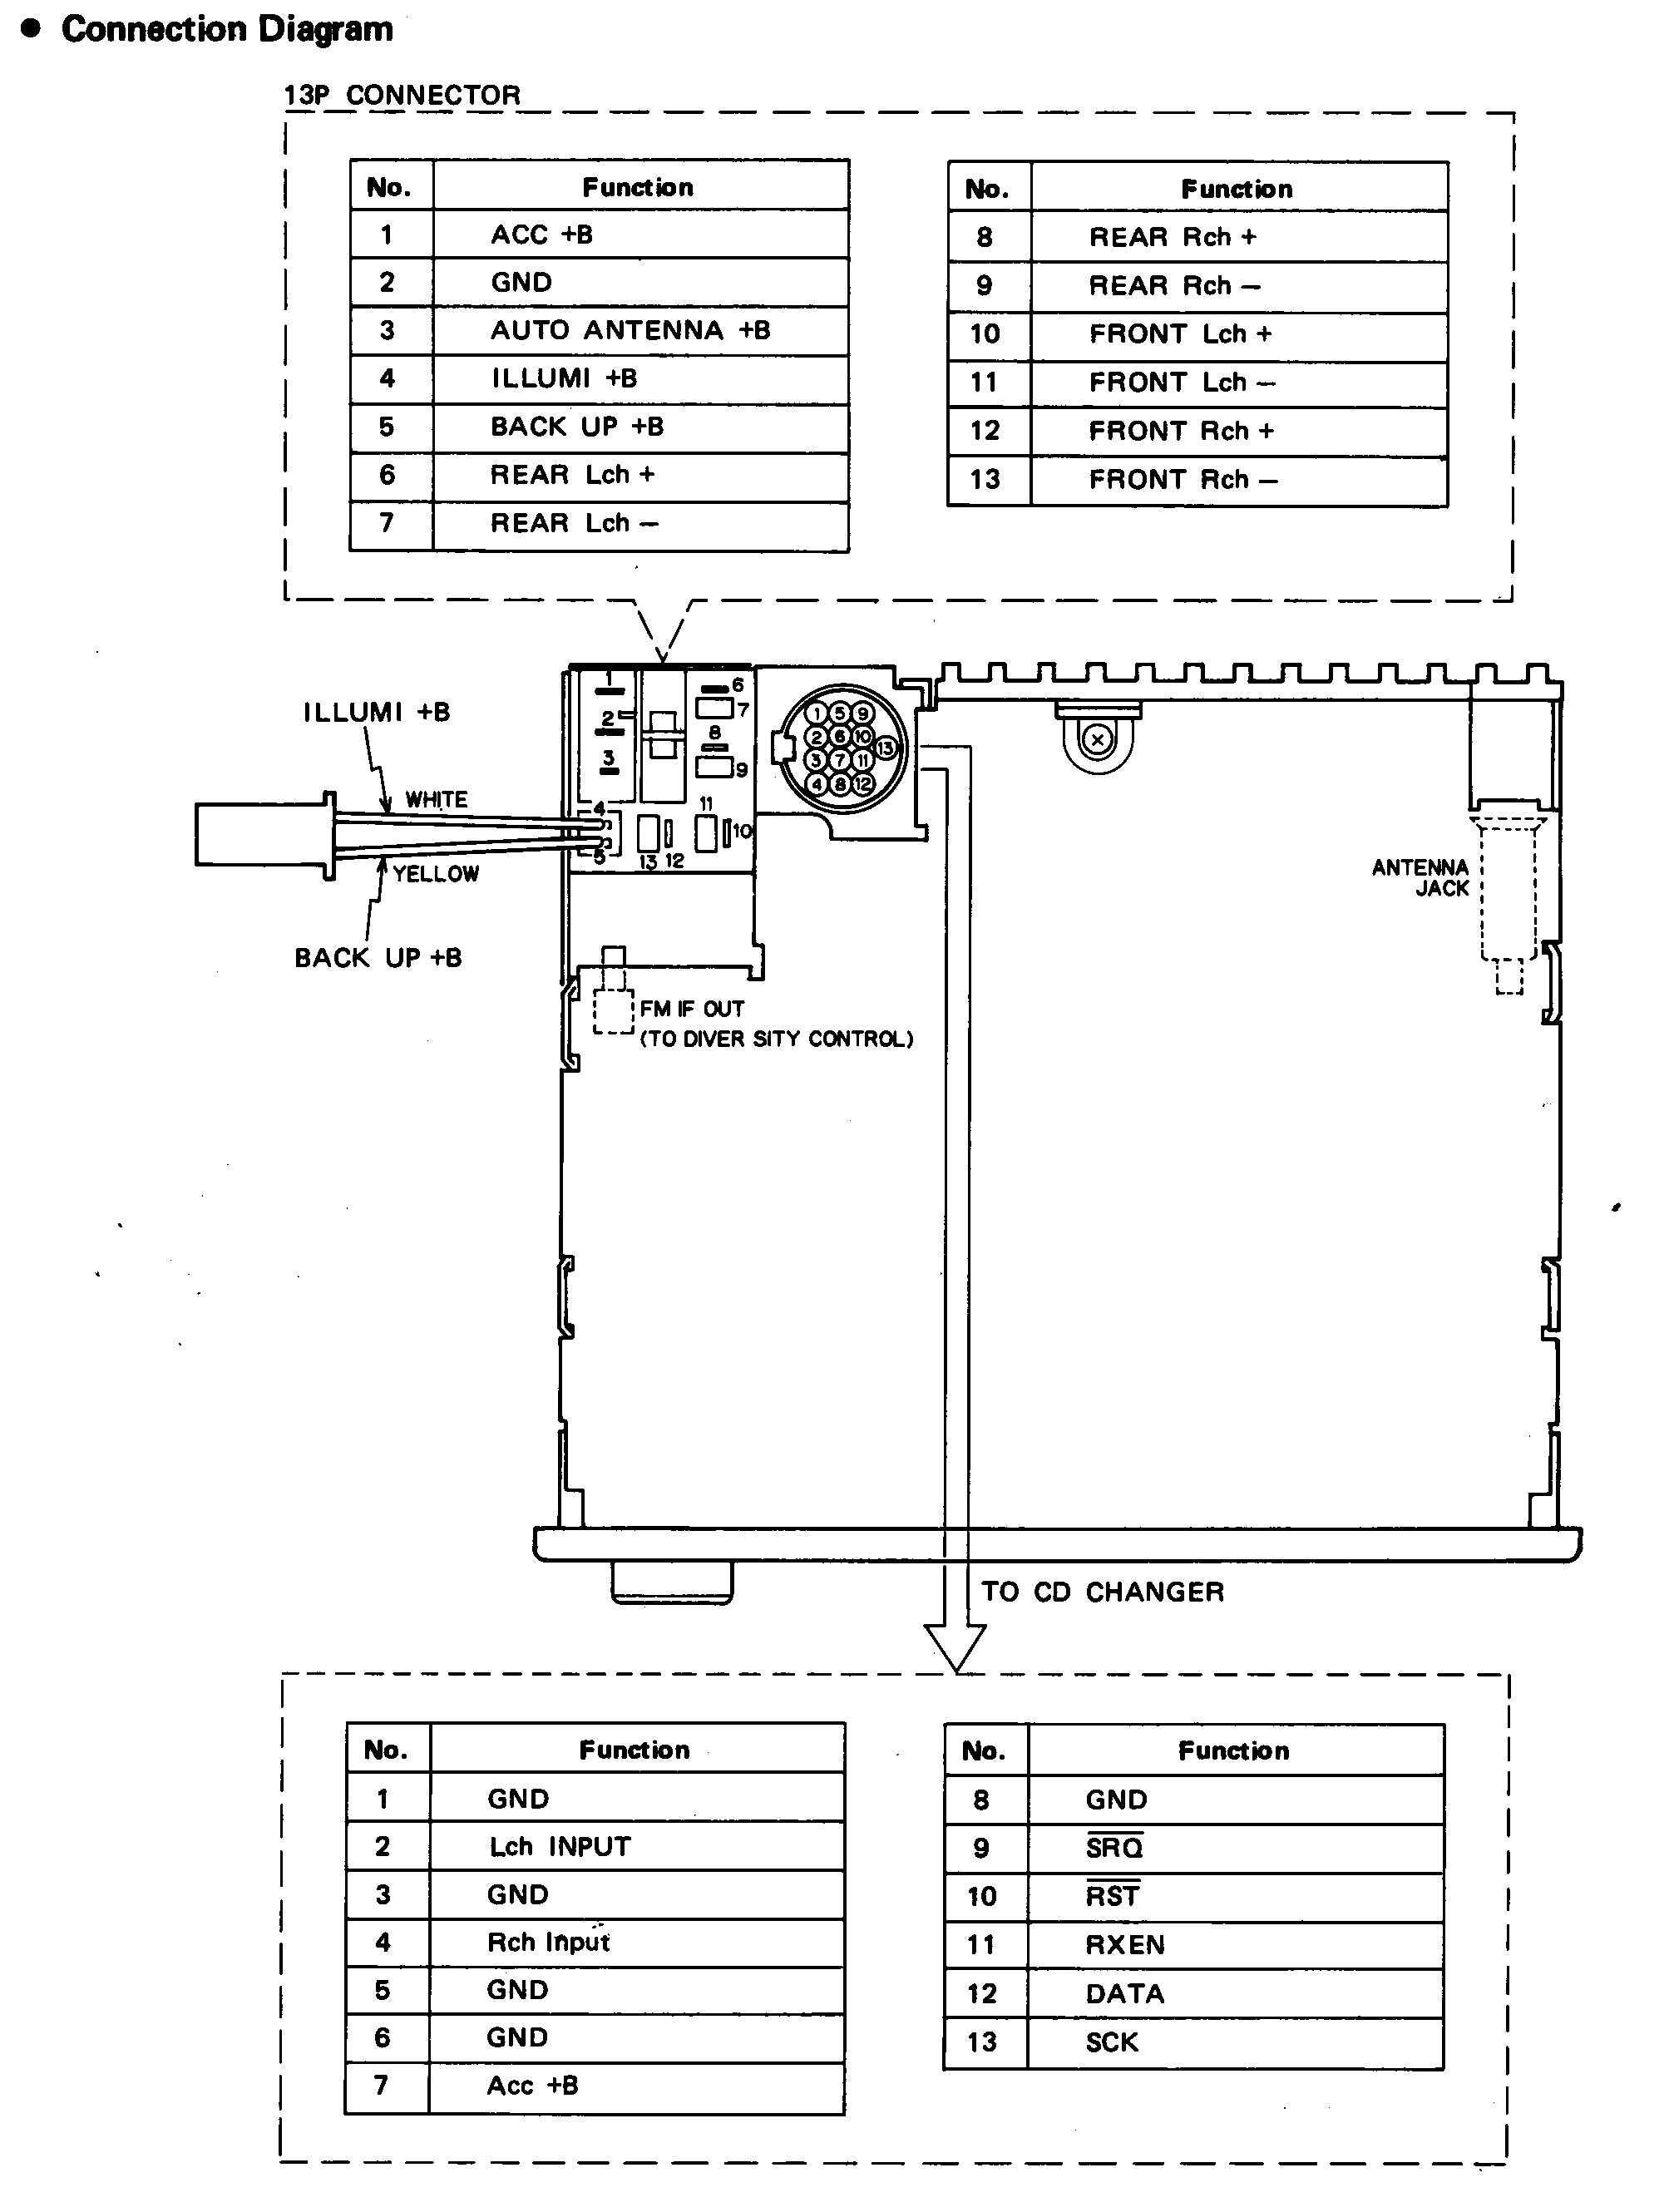 Wiring Diagram for Car Stereo with Amplifier Car Stereo Wiring Diagram Bmw Car Radio Stereo Audio Wiring Diagram Of Wiring Diagram for Car Stereo with Amplifier